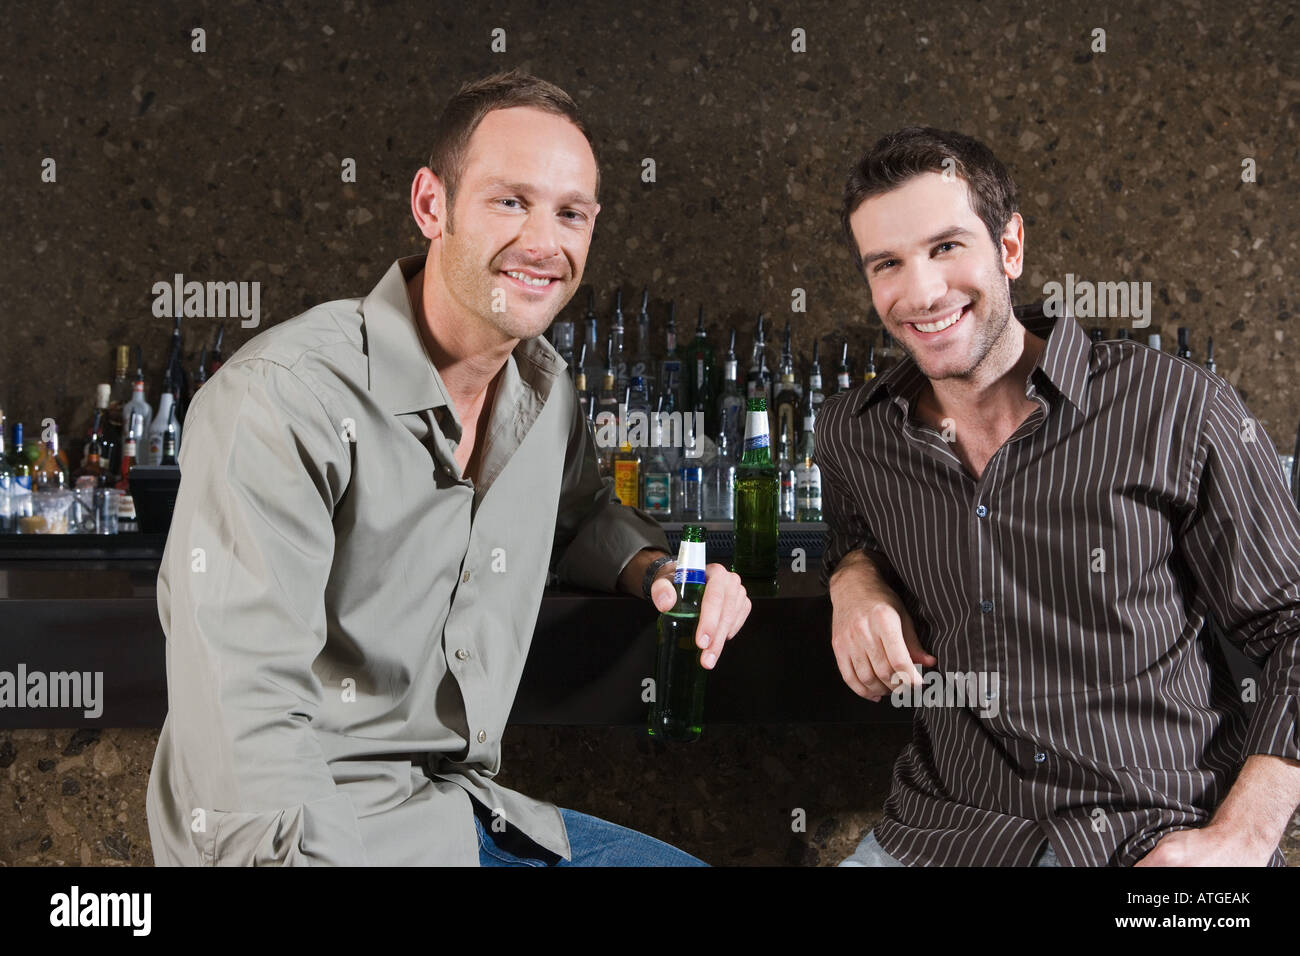 Two men drinking in a bar Stock Photo